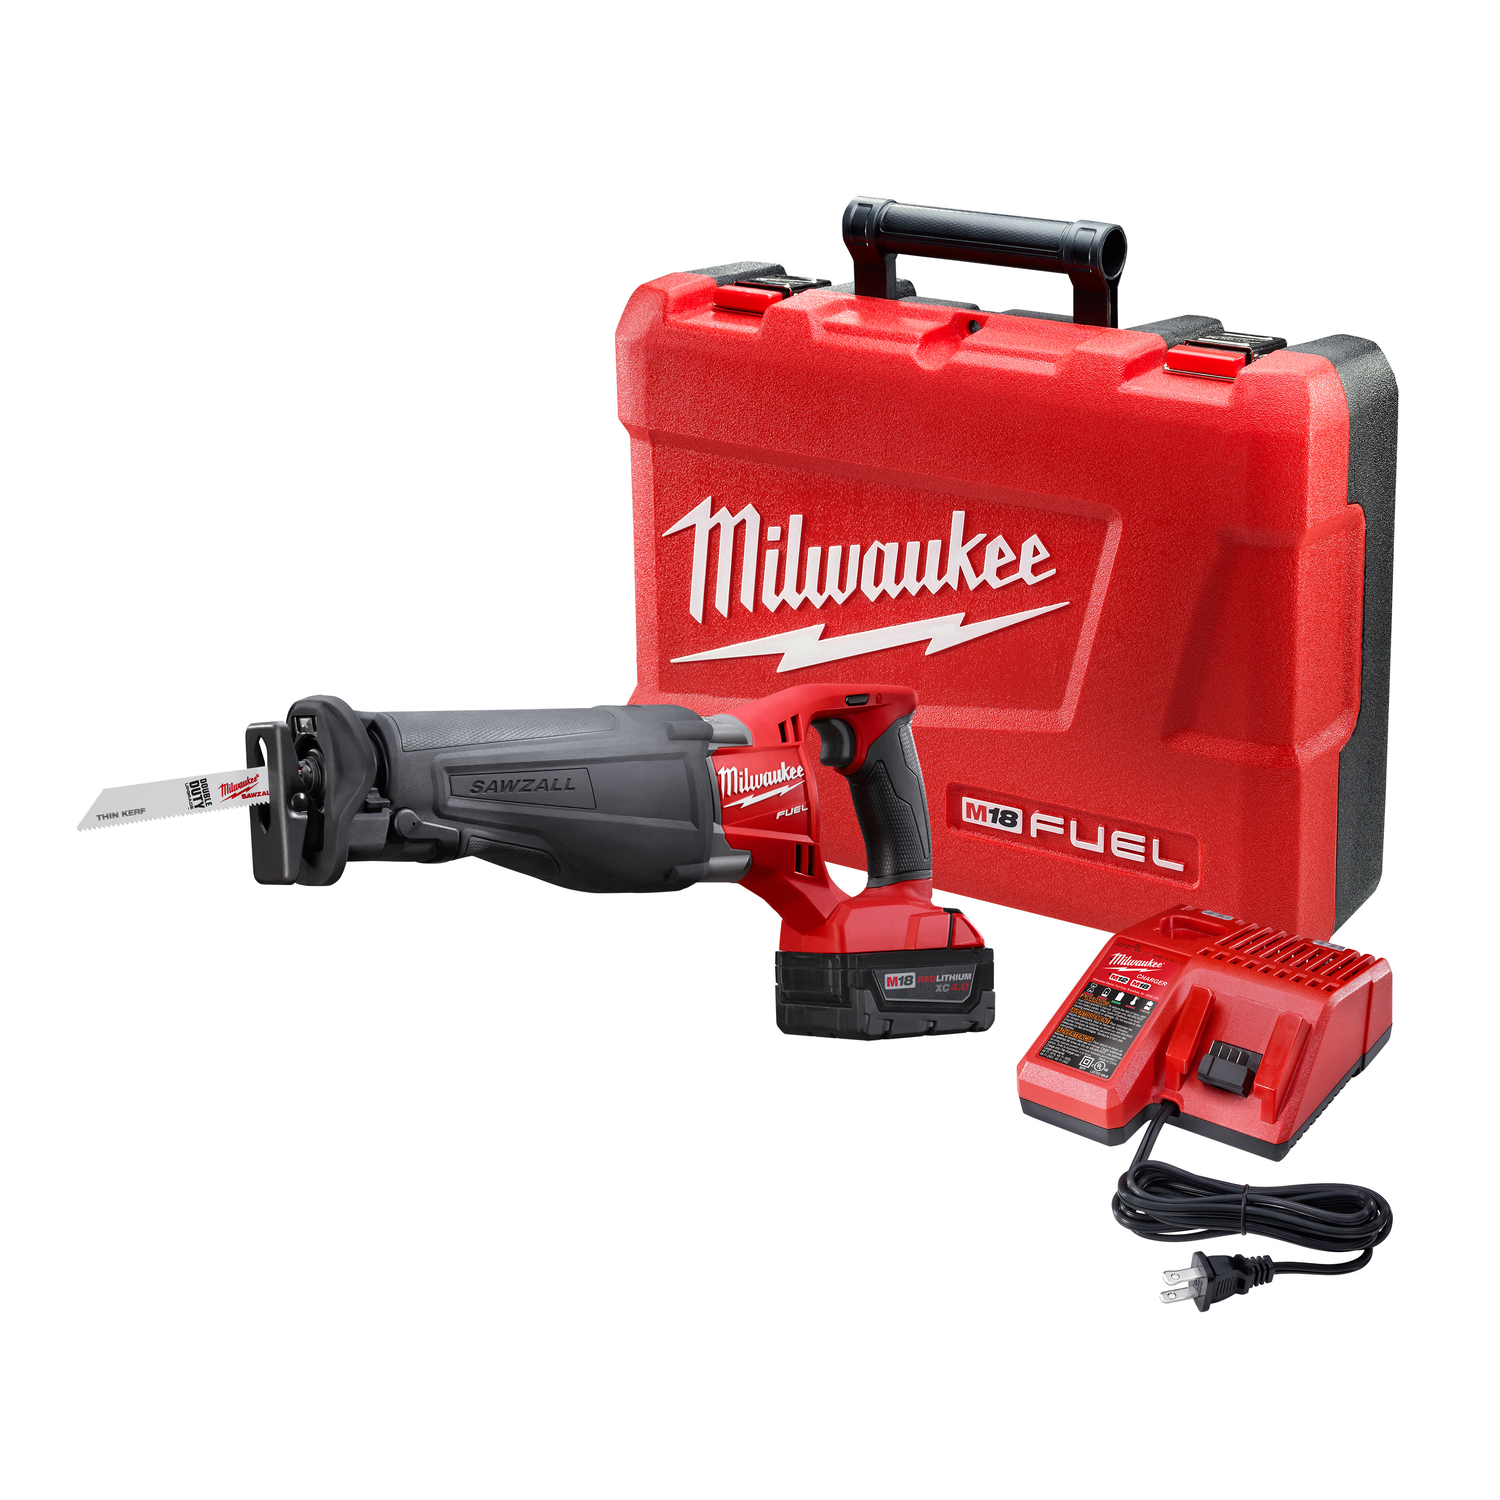 Sawzall Wiring Dimmer Wire Data Schema On Off Touch Switch Circuit Diagram Tradeoficcom Milwaukee M18 Fuel Cordless Reciprocating Saw 1 125 In 18 Rh Acehardware Com Leviton Insteon